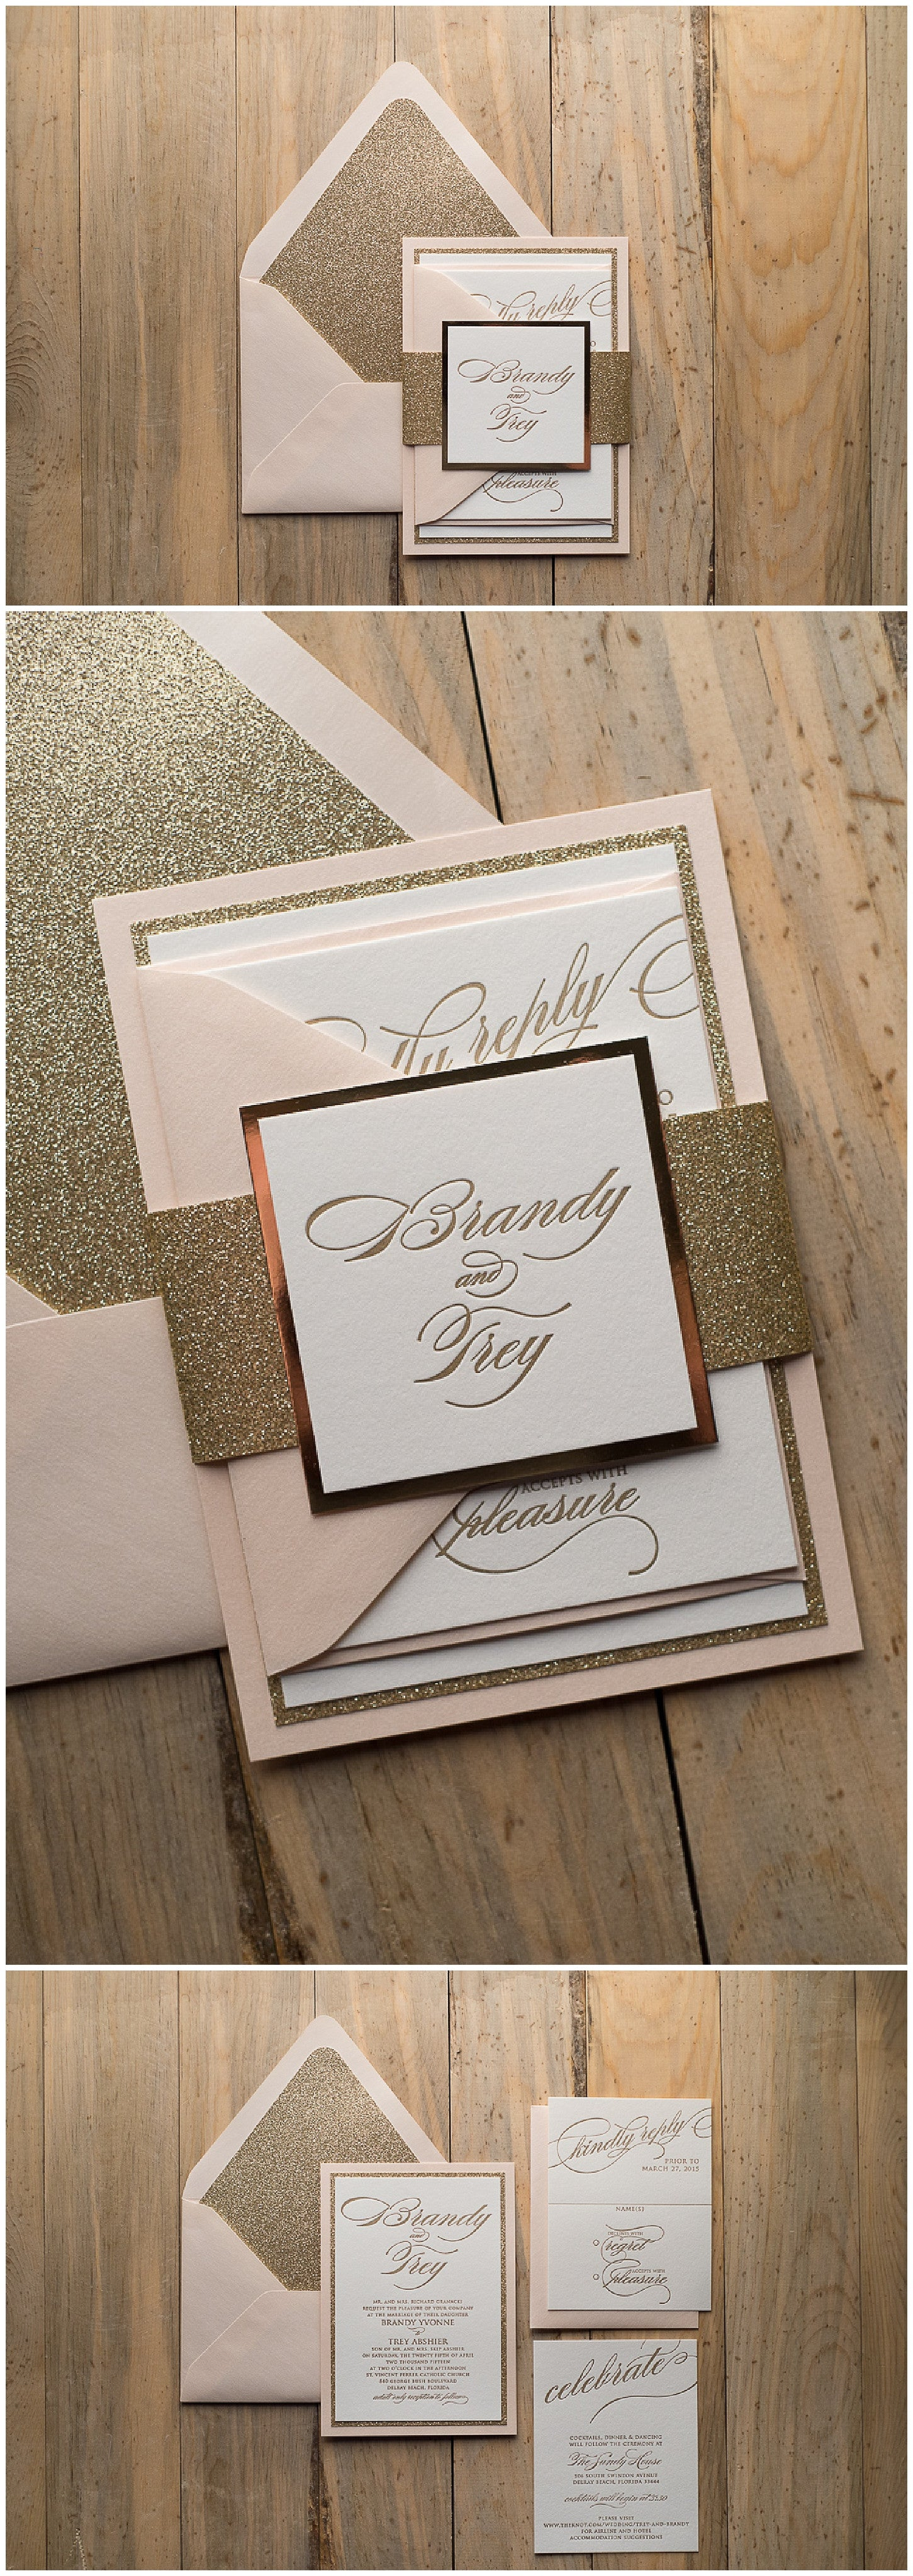 Letterpress Wedding Invitations, Blush and Gold, Trending, Fancy, Black Tie, Formal, Faith Suite, Just Invite Me